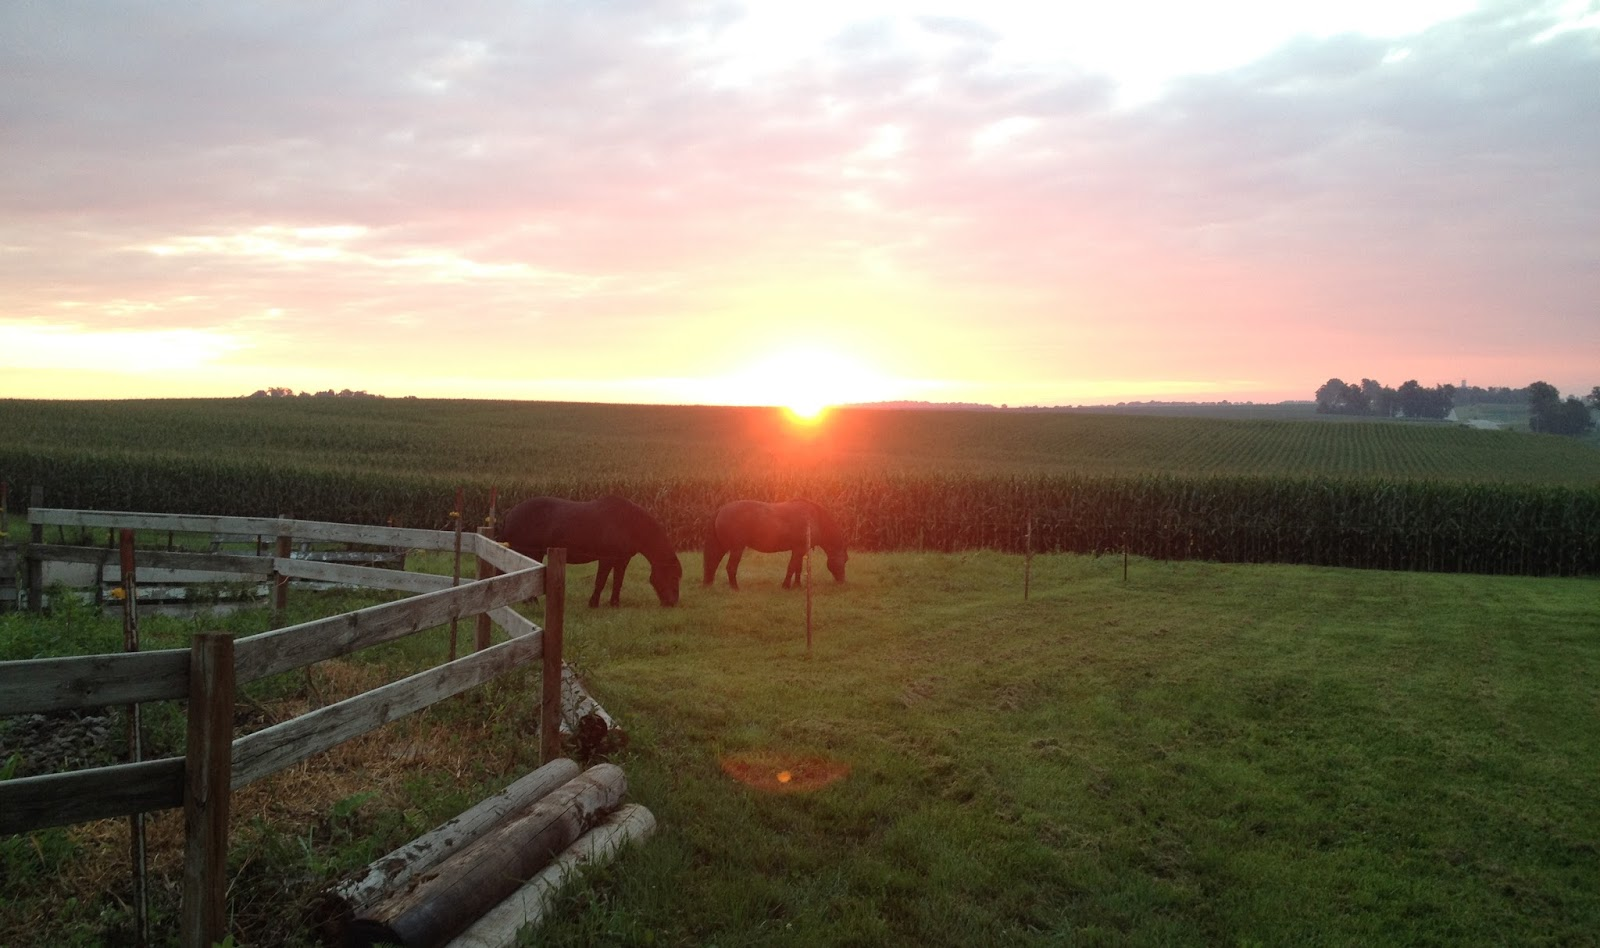 Amish Horses: Morning in Amish Country